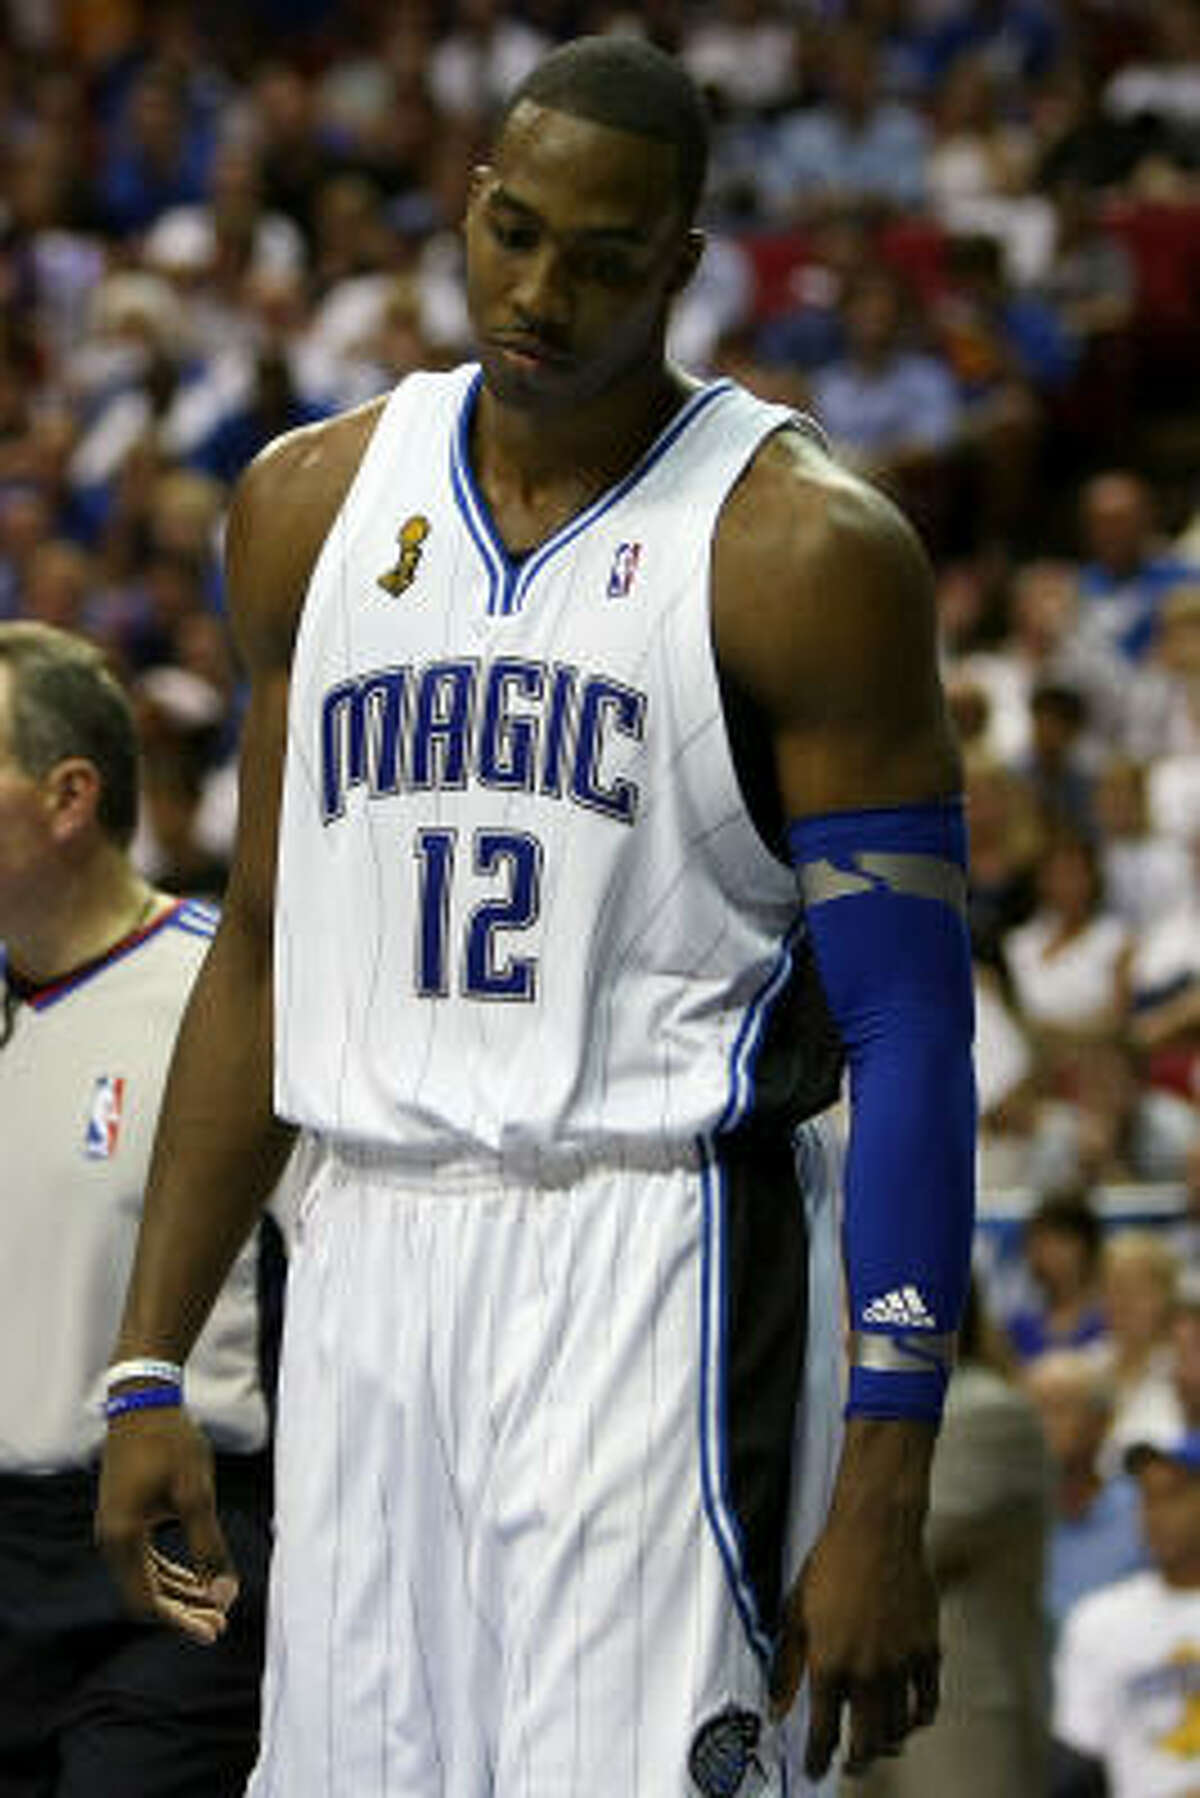 Game 5: Los Angeles Lakers 99, Orlando Magic 86 Dwight Howard of the Orlando Magic looks down in the fourth quarter as the Magic trail the Los Angeles Lakers.